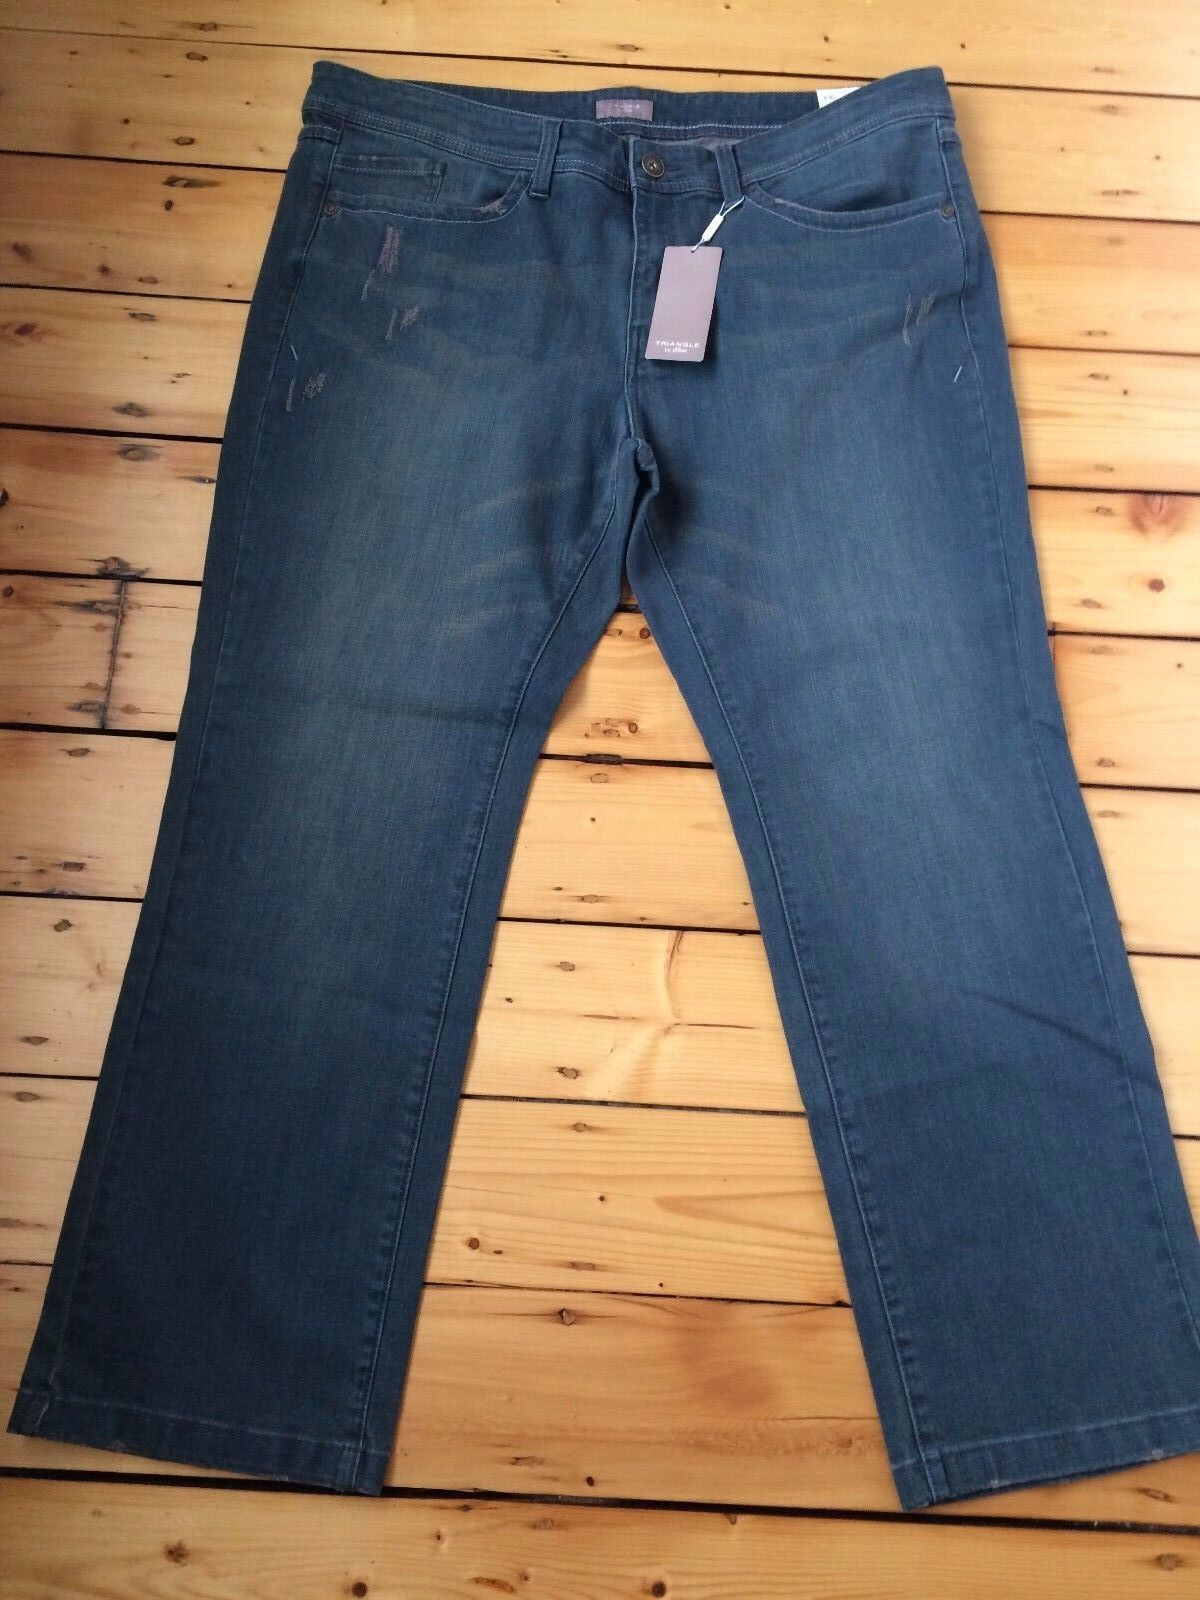 BNWT TRIANGLE BY S OLIVER LADIES LUXURY JEANS D 52 F 54 UK PLUS SIZE 26 LEG 32